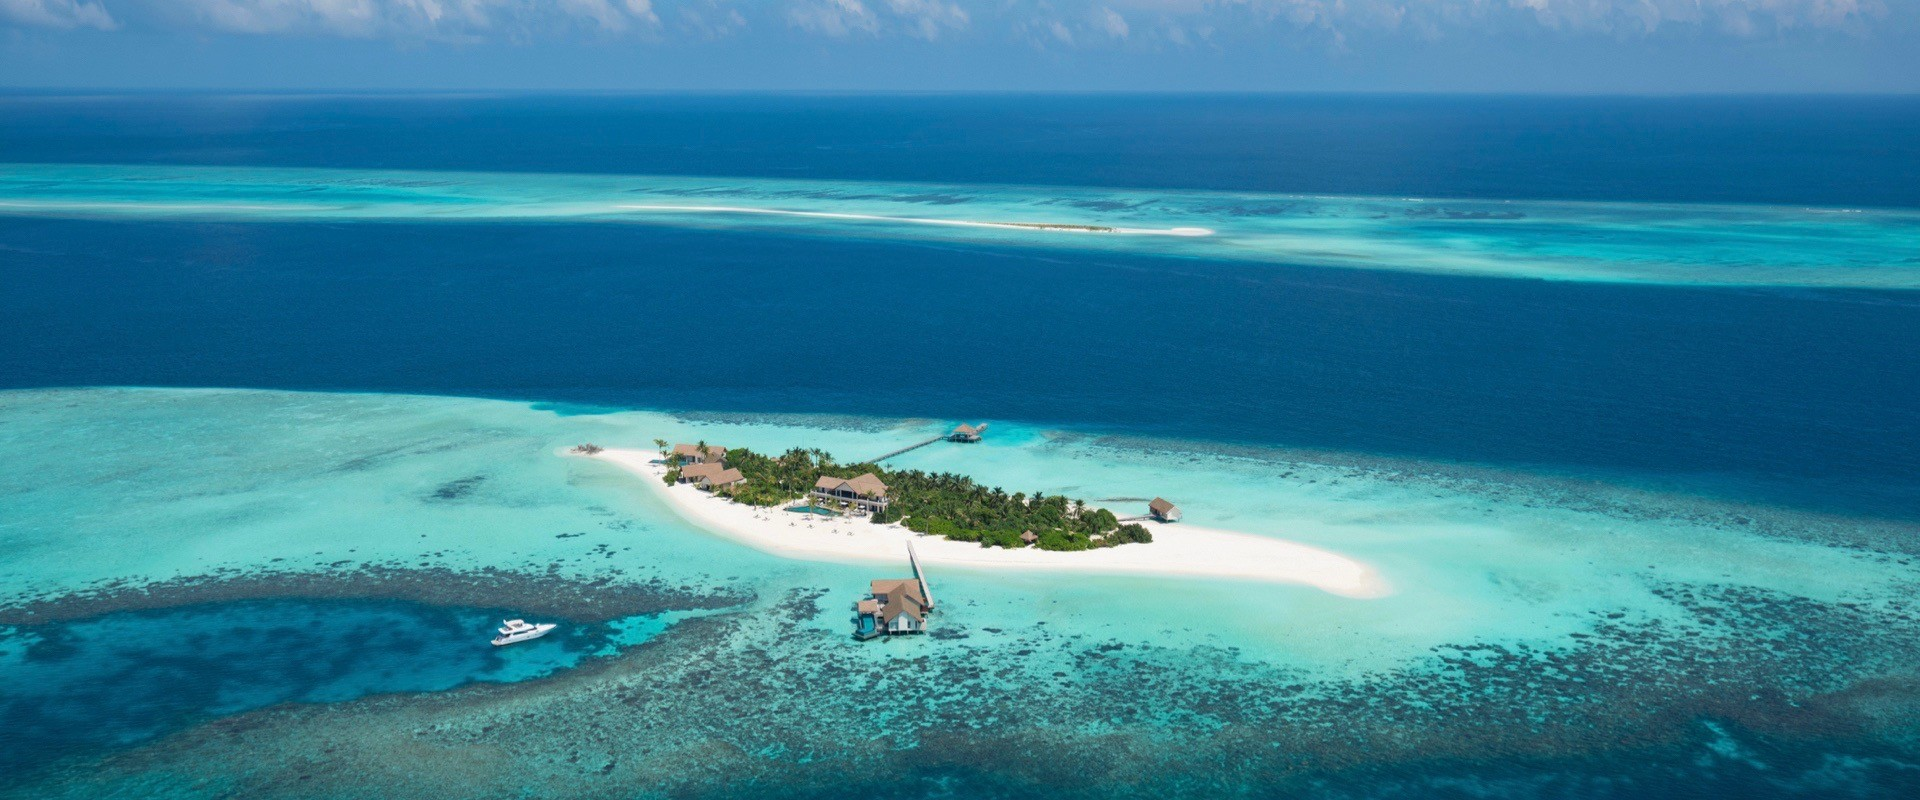 Four Seasons Maldives Indian Ocean Voavah Private island